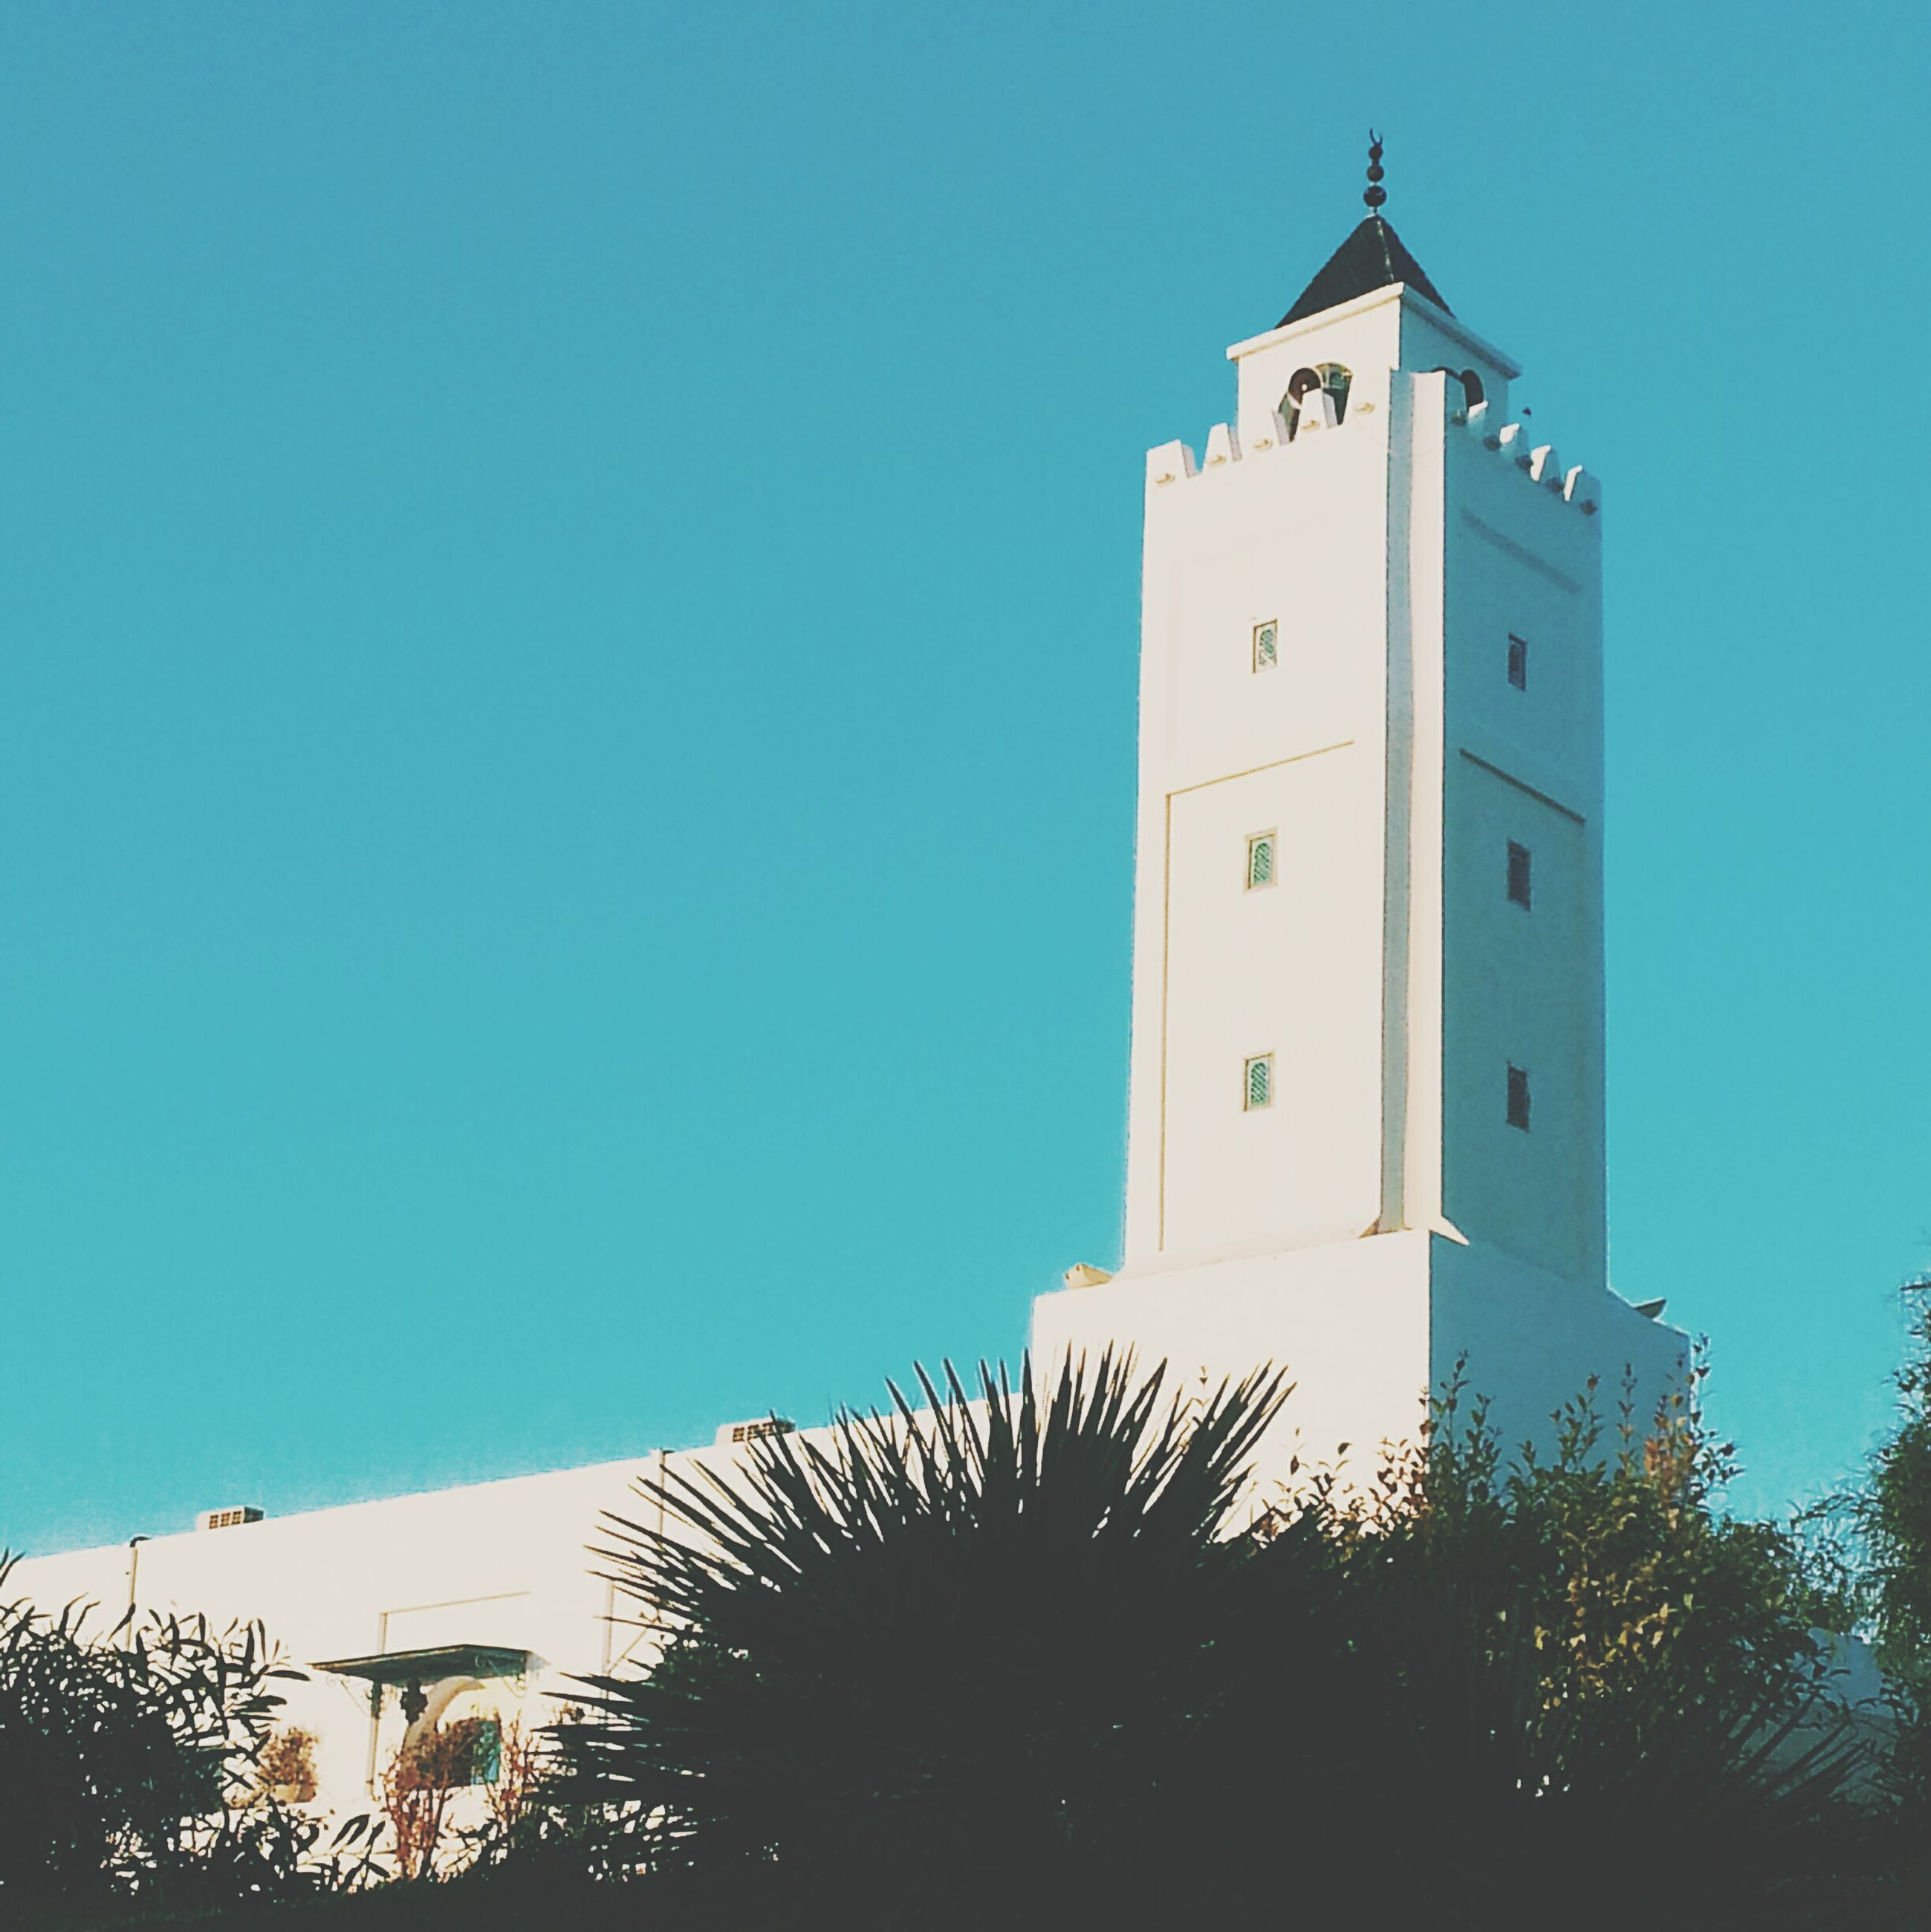 clear sky, blue, architecture, built structure, building exterior, copy space, low angle view, tower, religion, sunlight, church, place of worship, high section, no people, day, outdoors, tree, spirituality, building